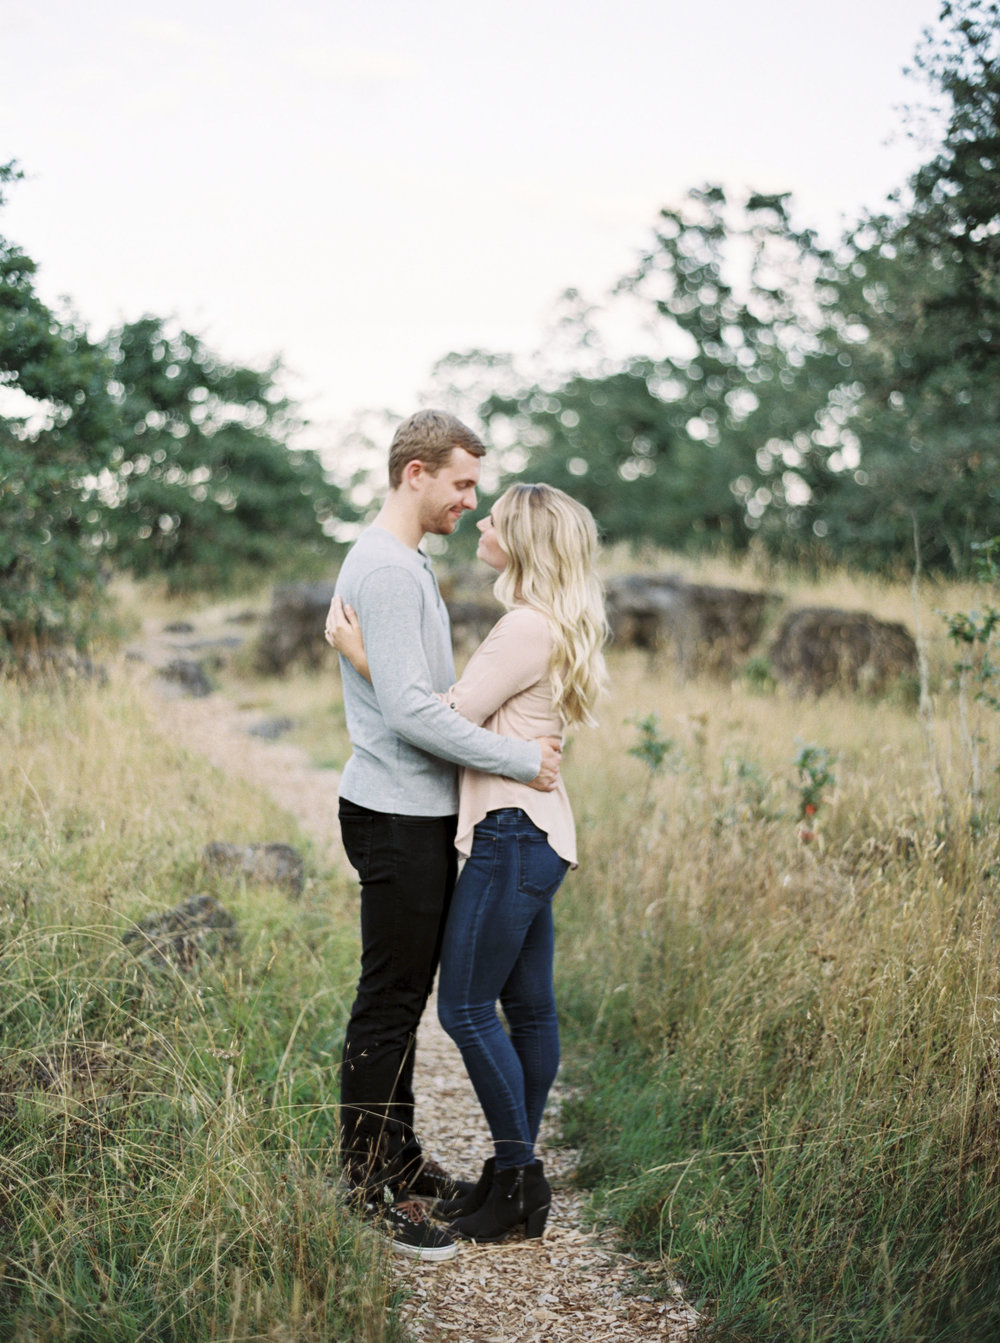 Oregon Couple Session. Amanda Lenhardt Photography Dallas Based Fine Art Photographer